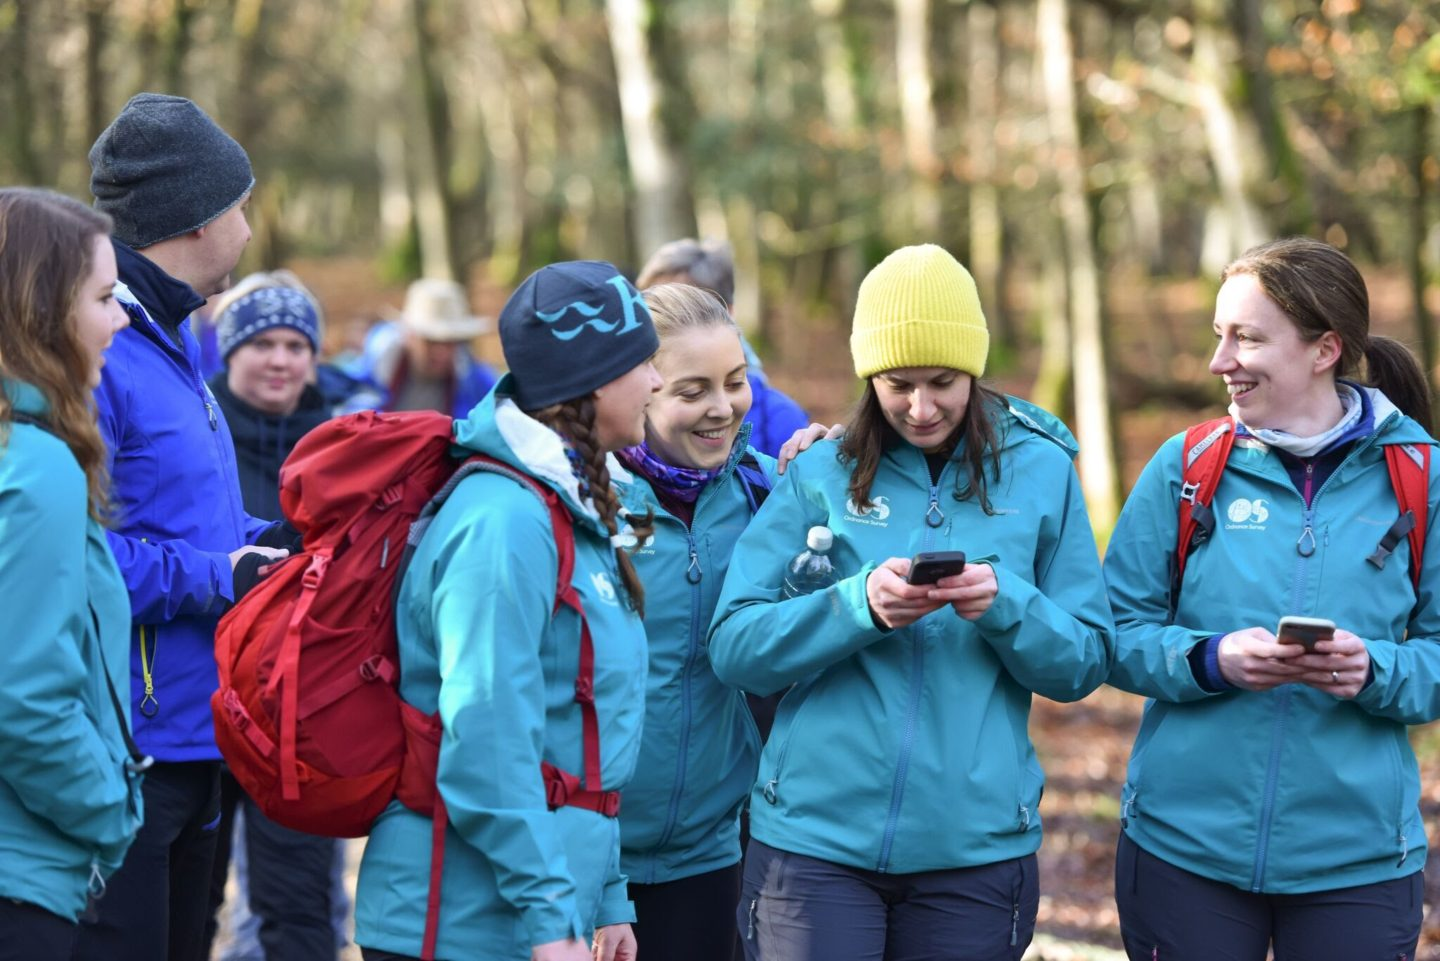 Becoming an Ordnance Survey #GetOutside Champion